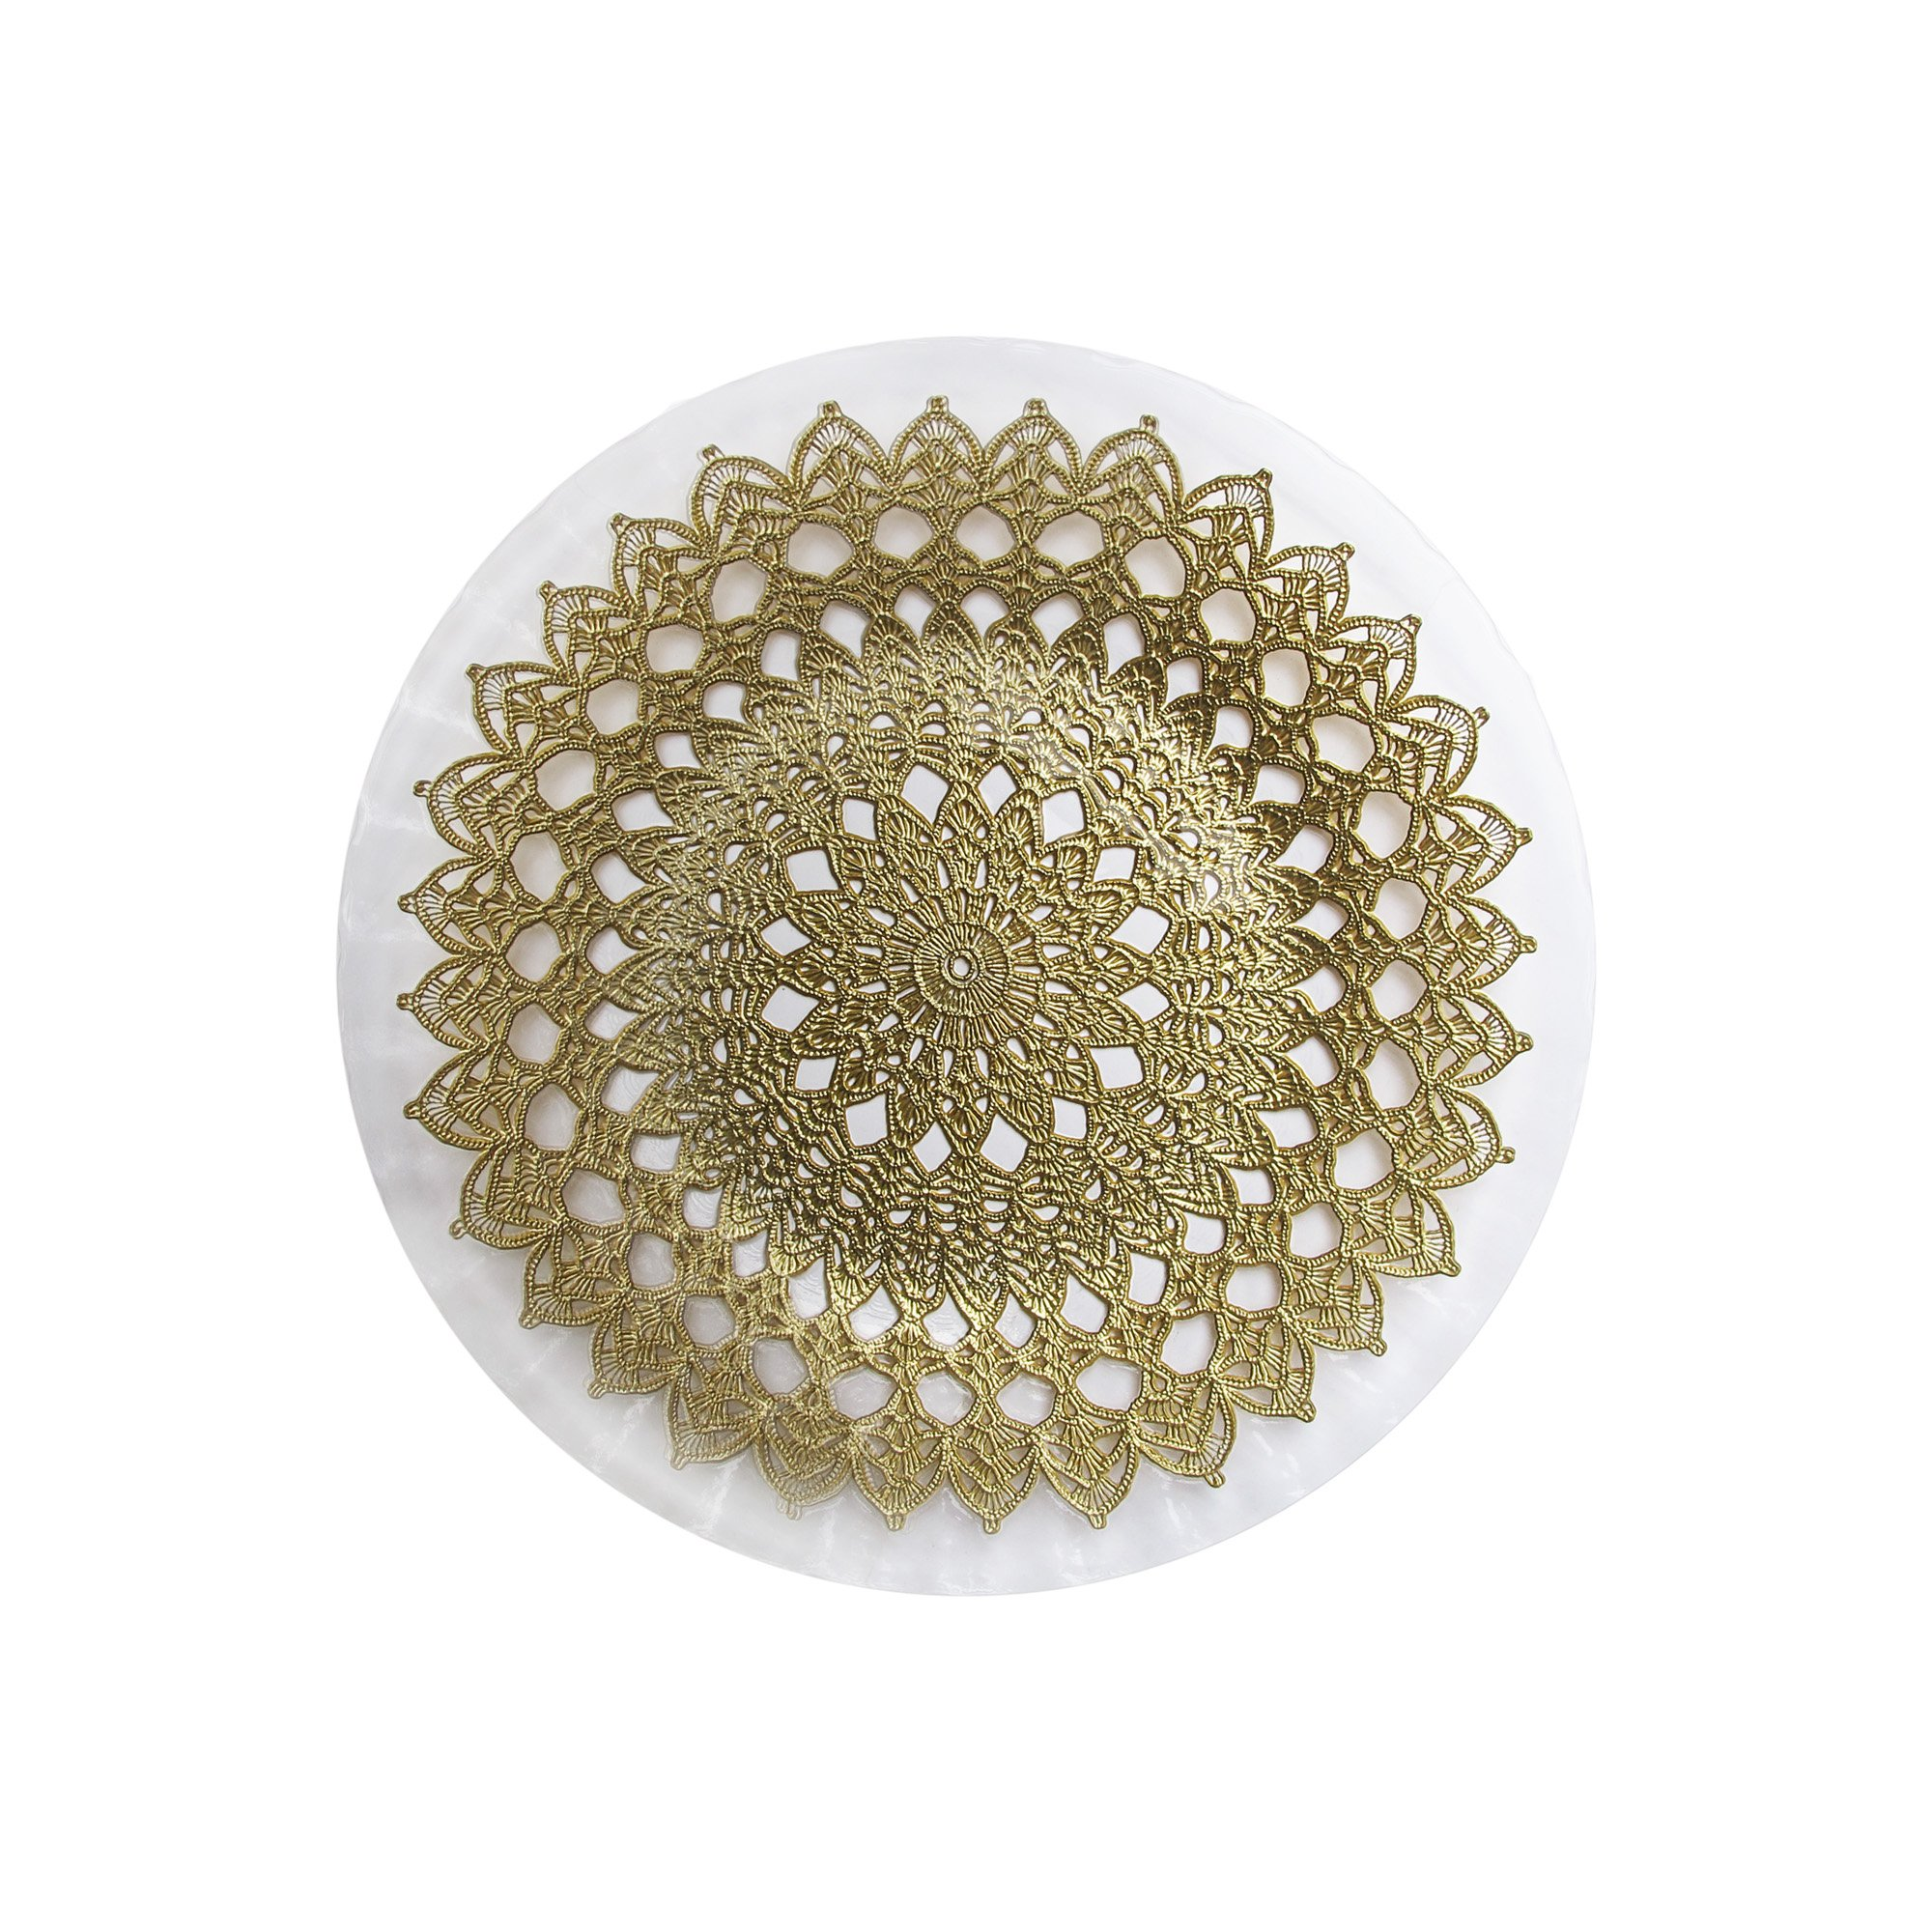 ChargeIt by Jay 1470441 Emma Glass Charger Plate, Gold